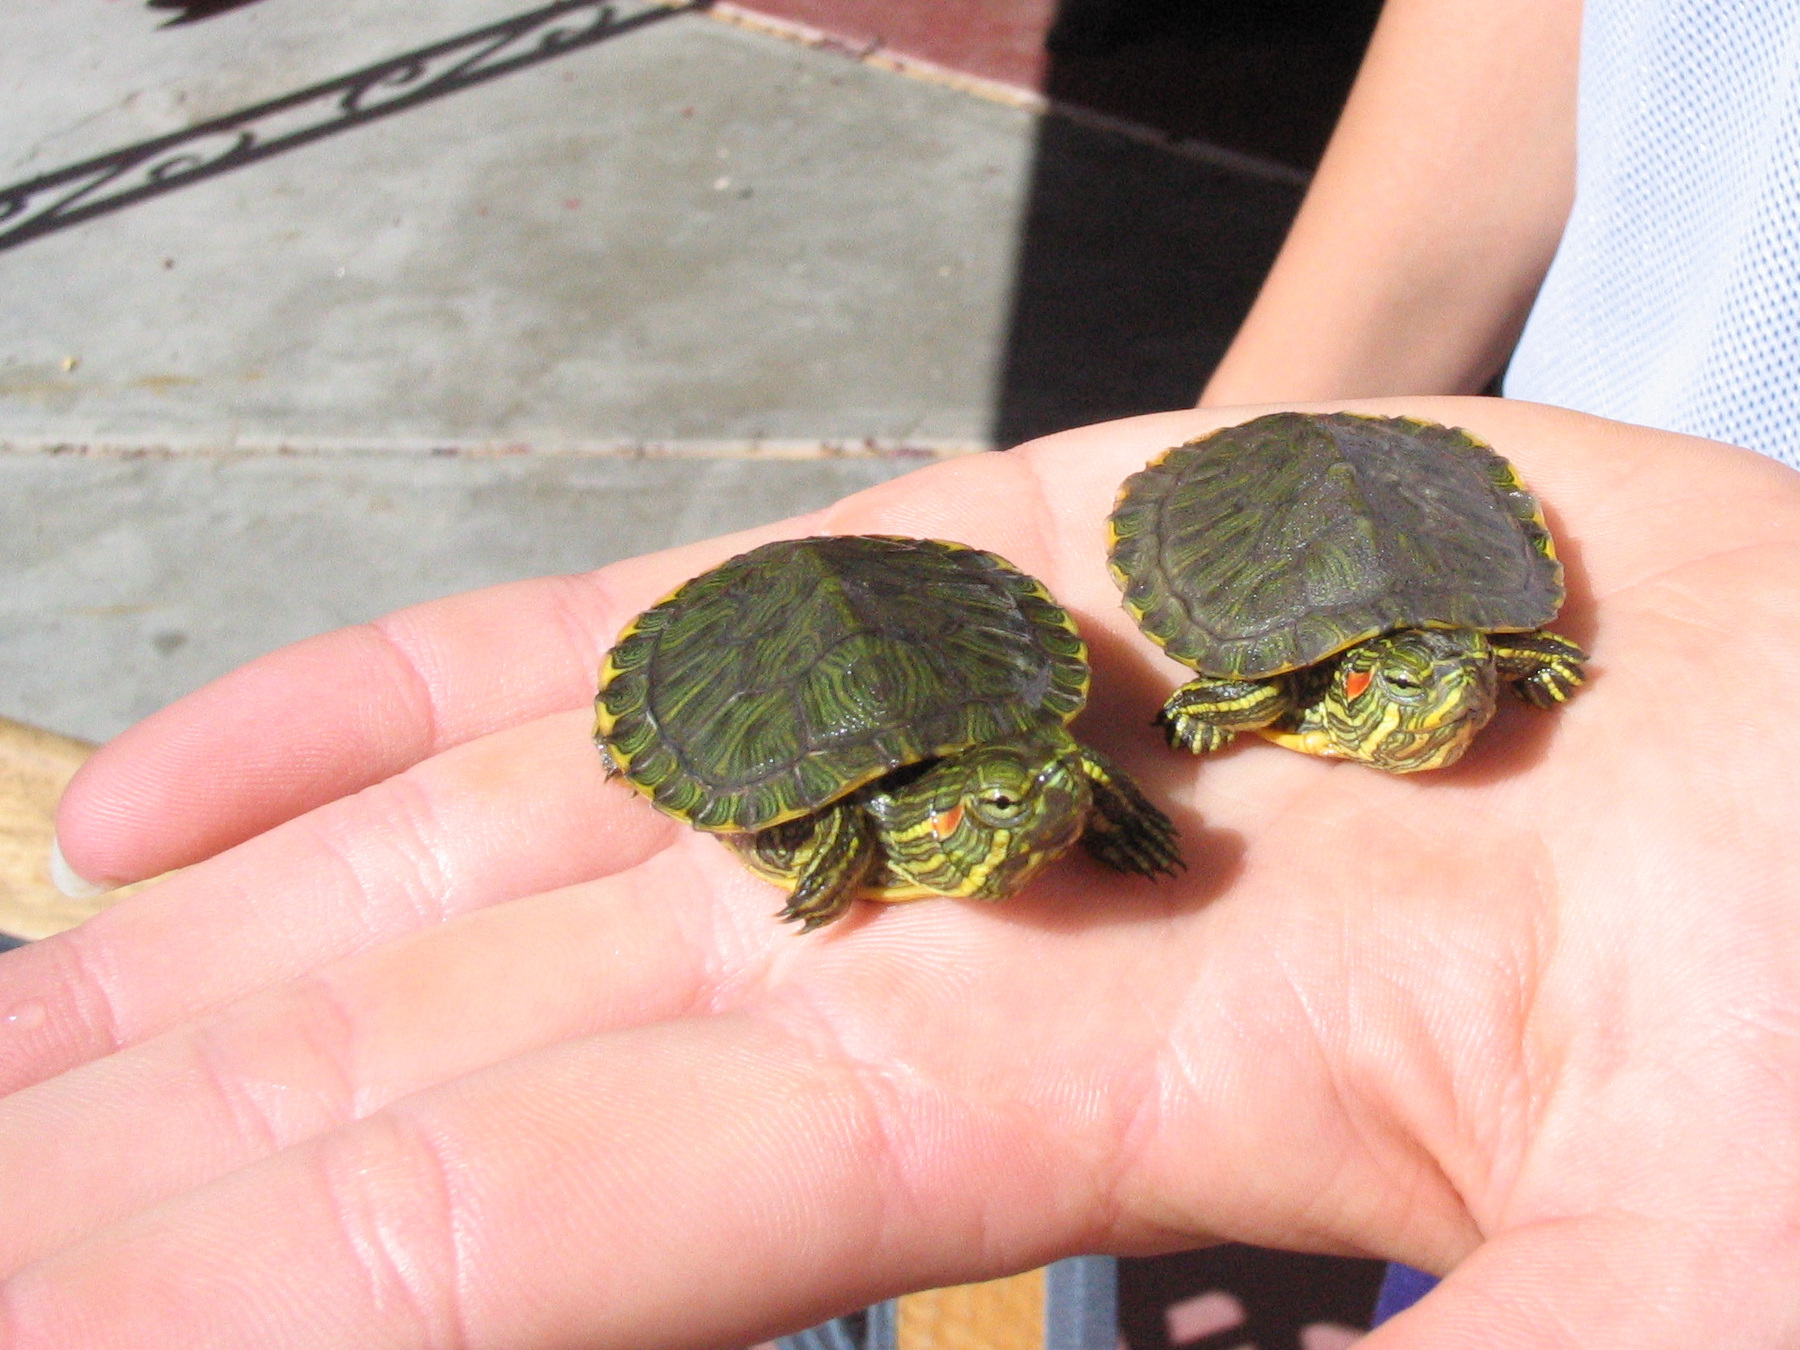 Baby turtle care red eared sliders painted turtles etc baby turtle care red eared sliders painted turtles etc amphibian care nvjuhfo Gallery